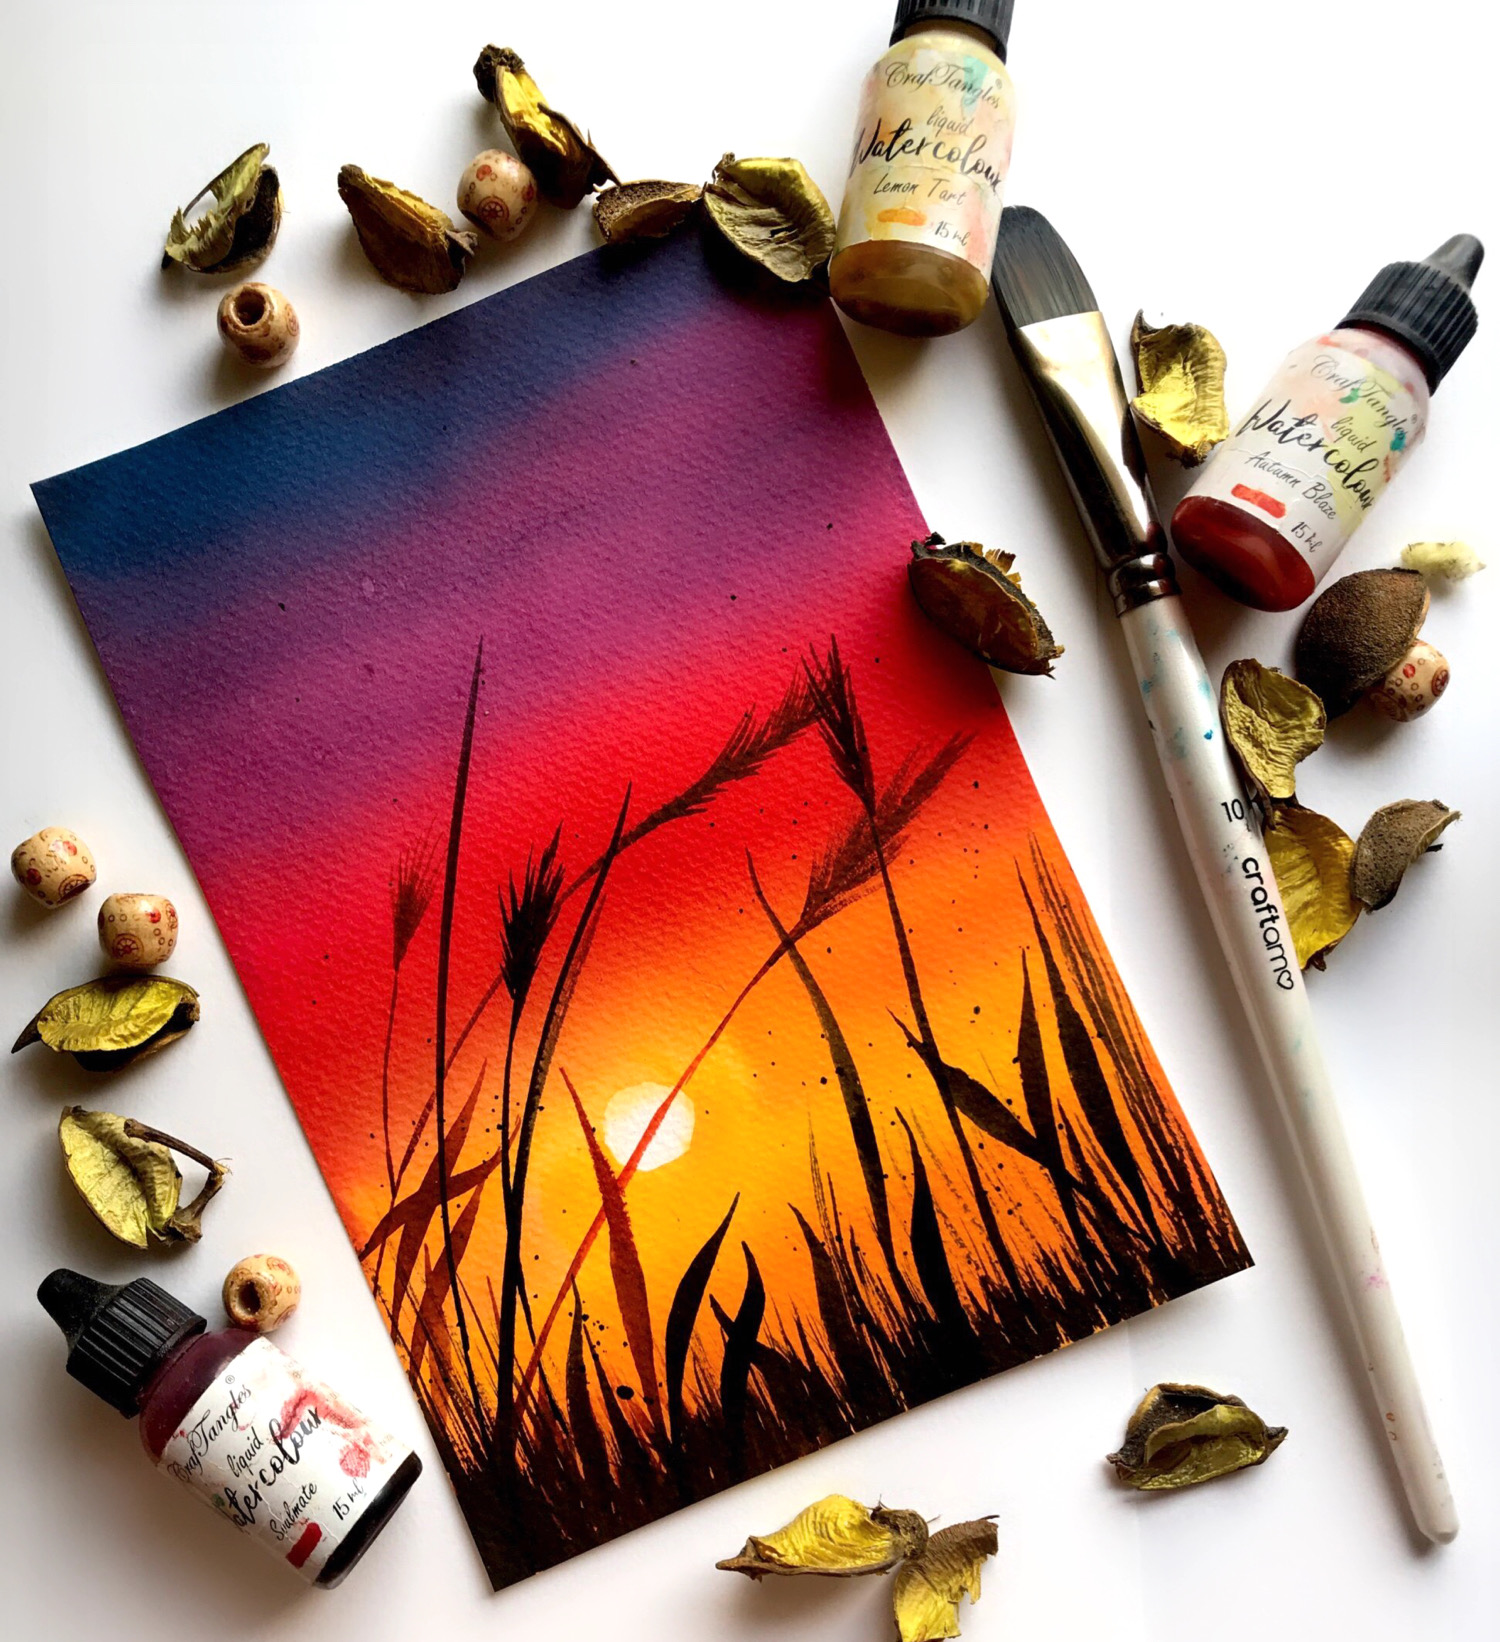 Gorgeous Sunset - Watercolor edition 3